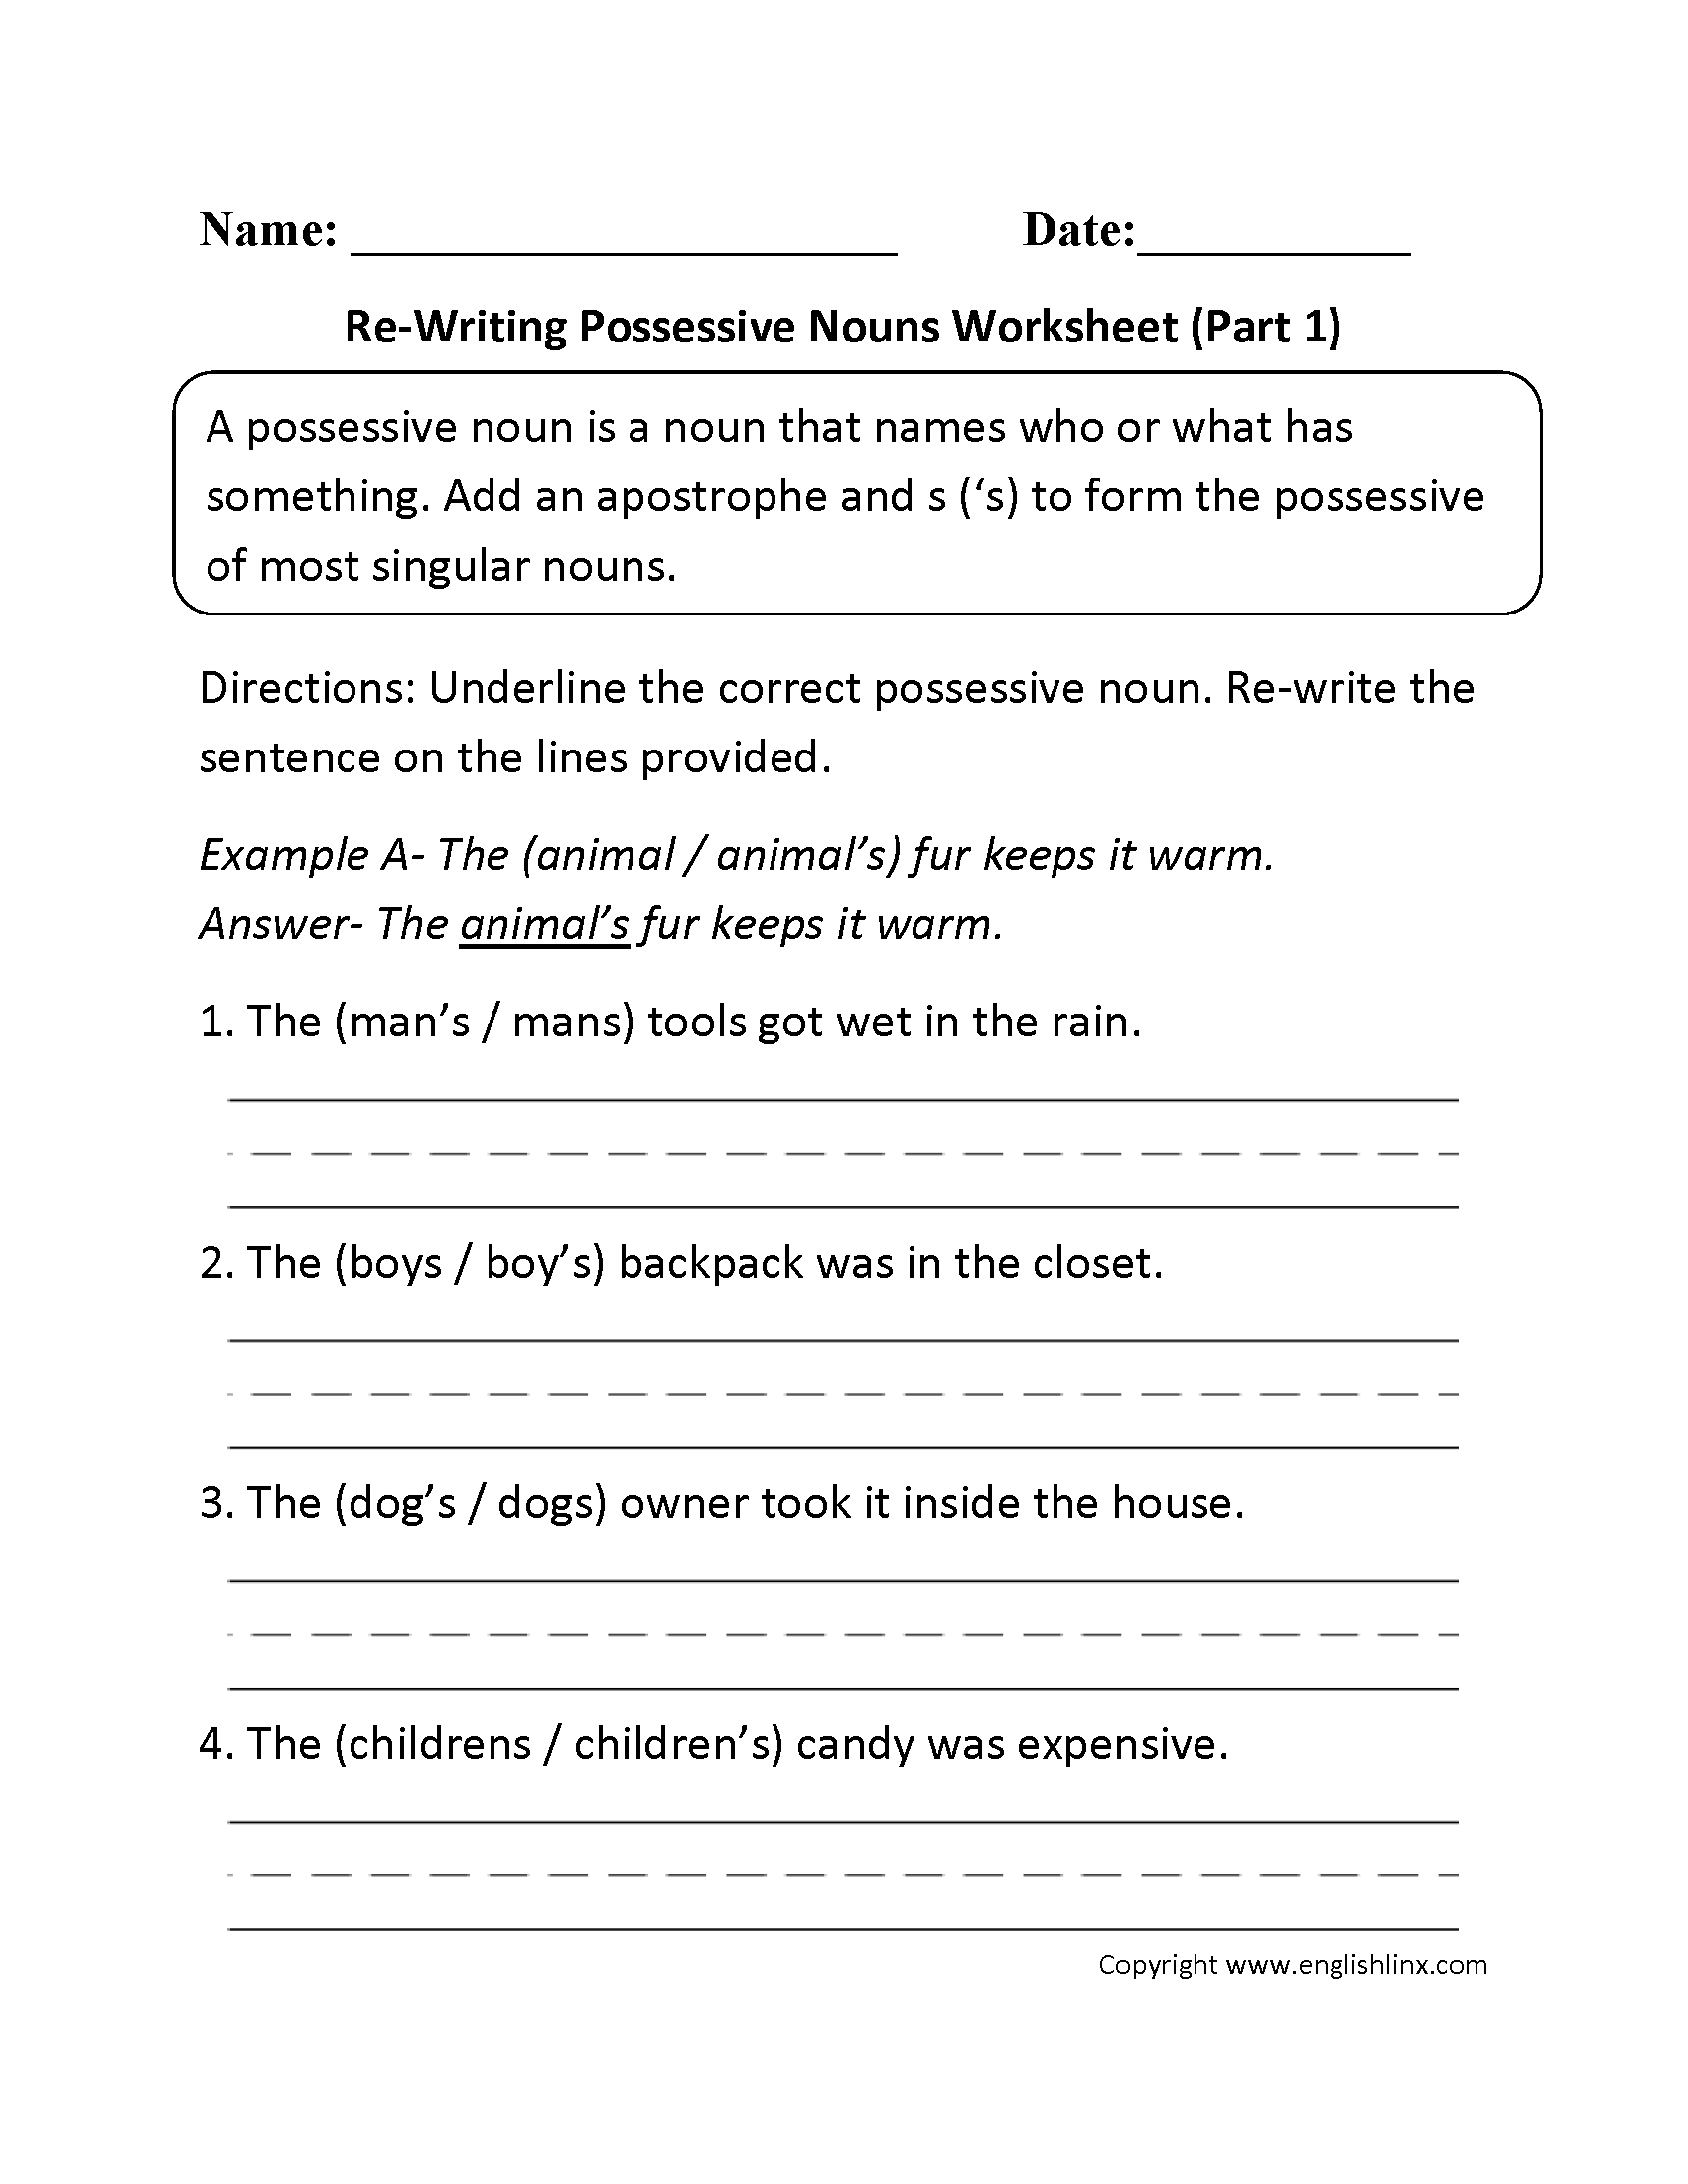 Re Writing Possessive Nouns Worksheet Part 1